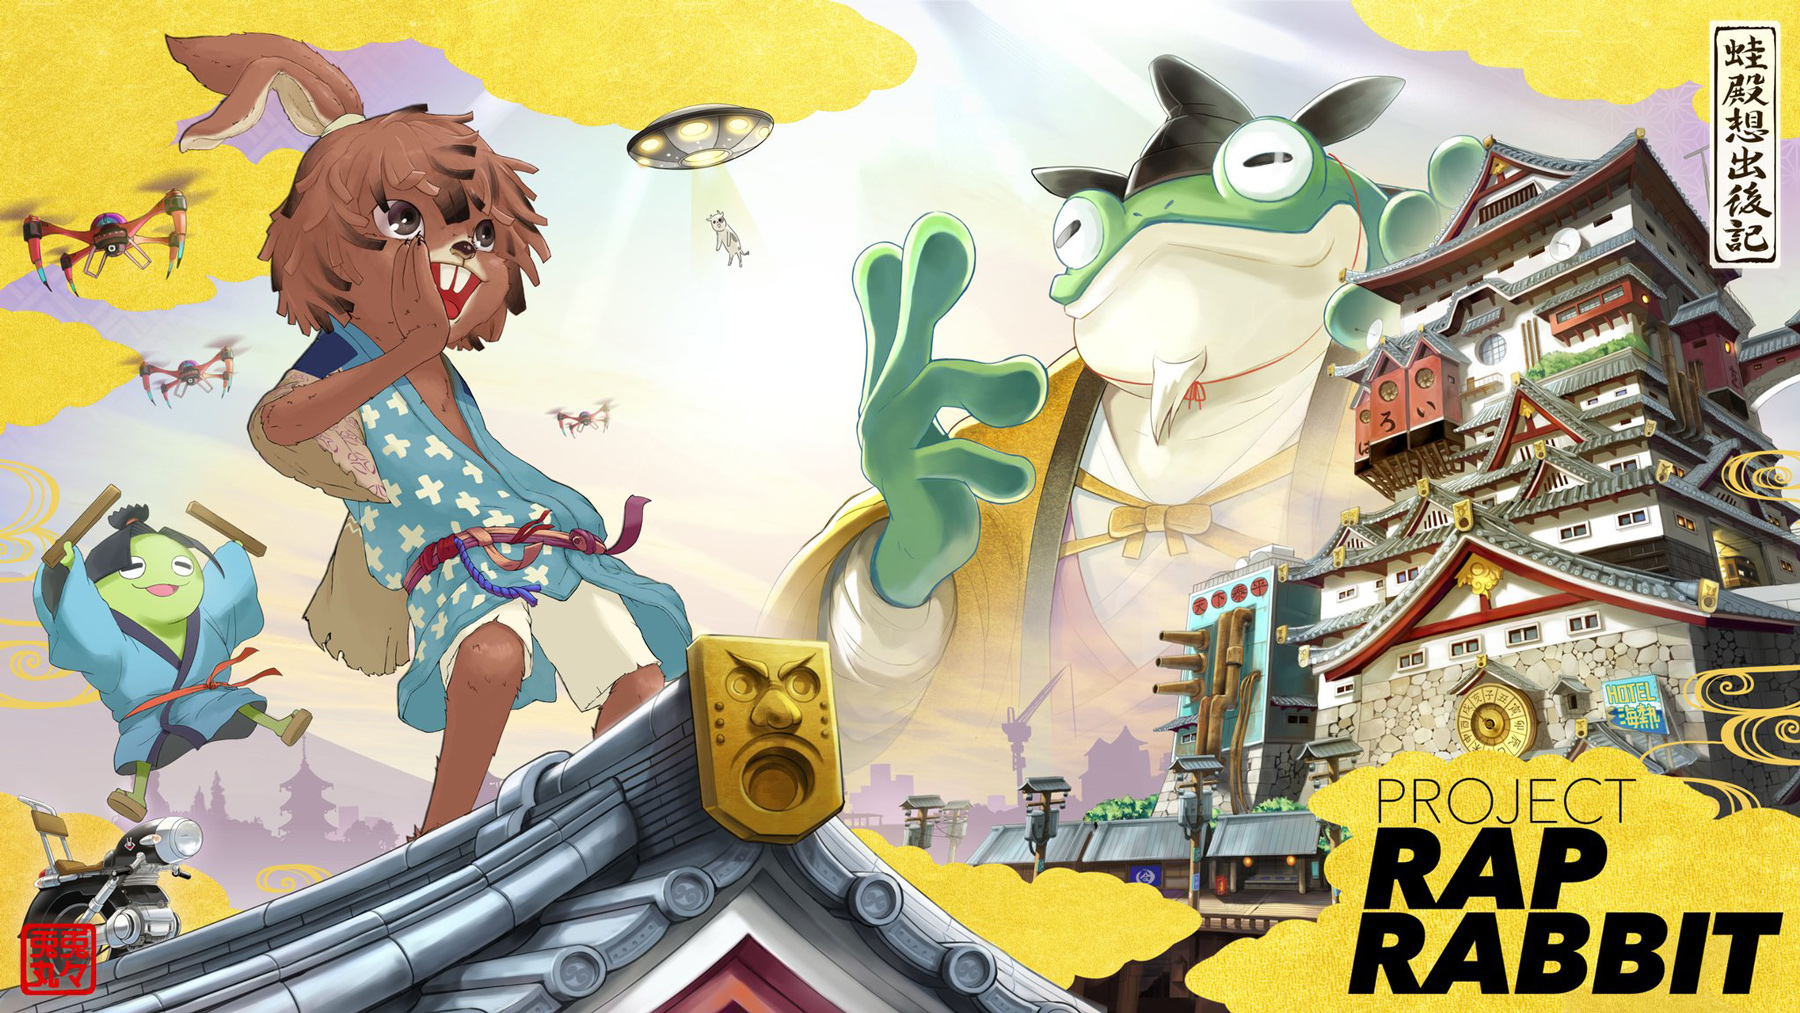 Project Rap Rabbit in development for PS4